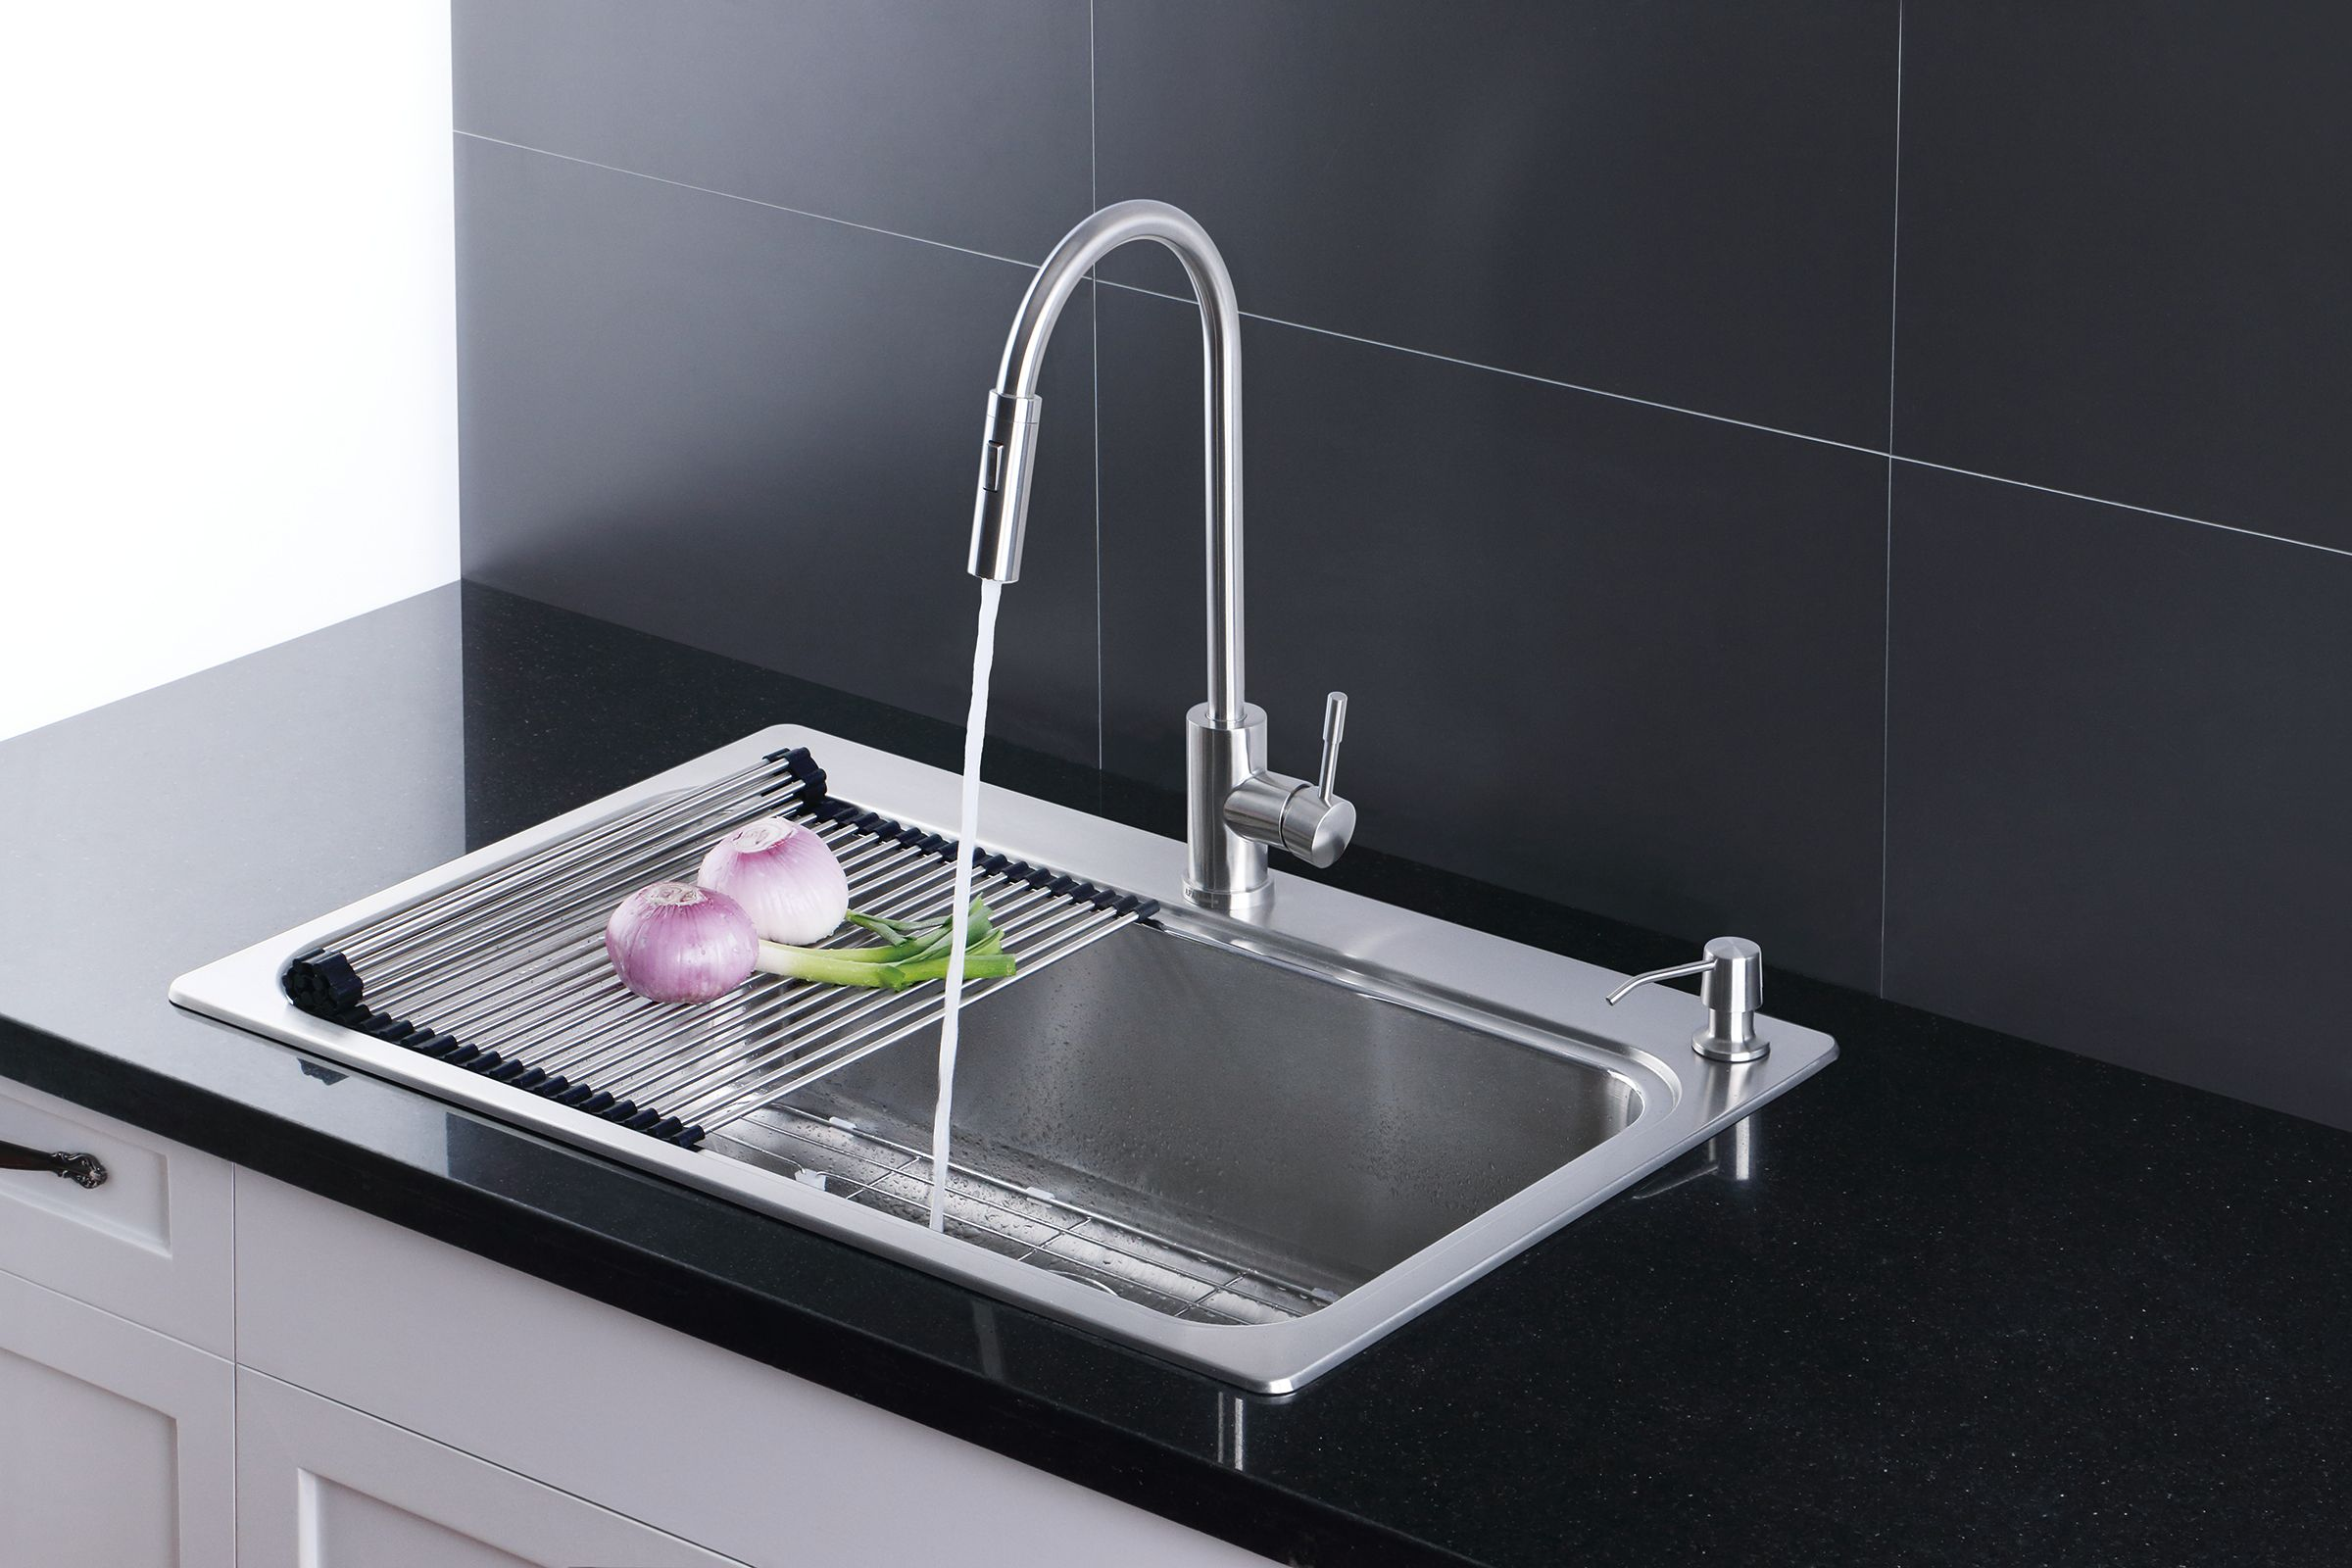 Afa Stainless Is A World Cl Manufacturer And Industry Leader In Premium Steel Sinks Shower Systems Faucet Tapware Sets The